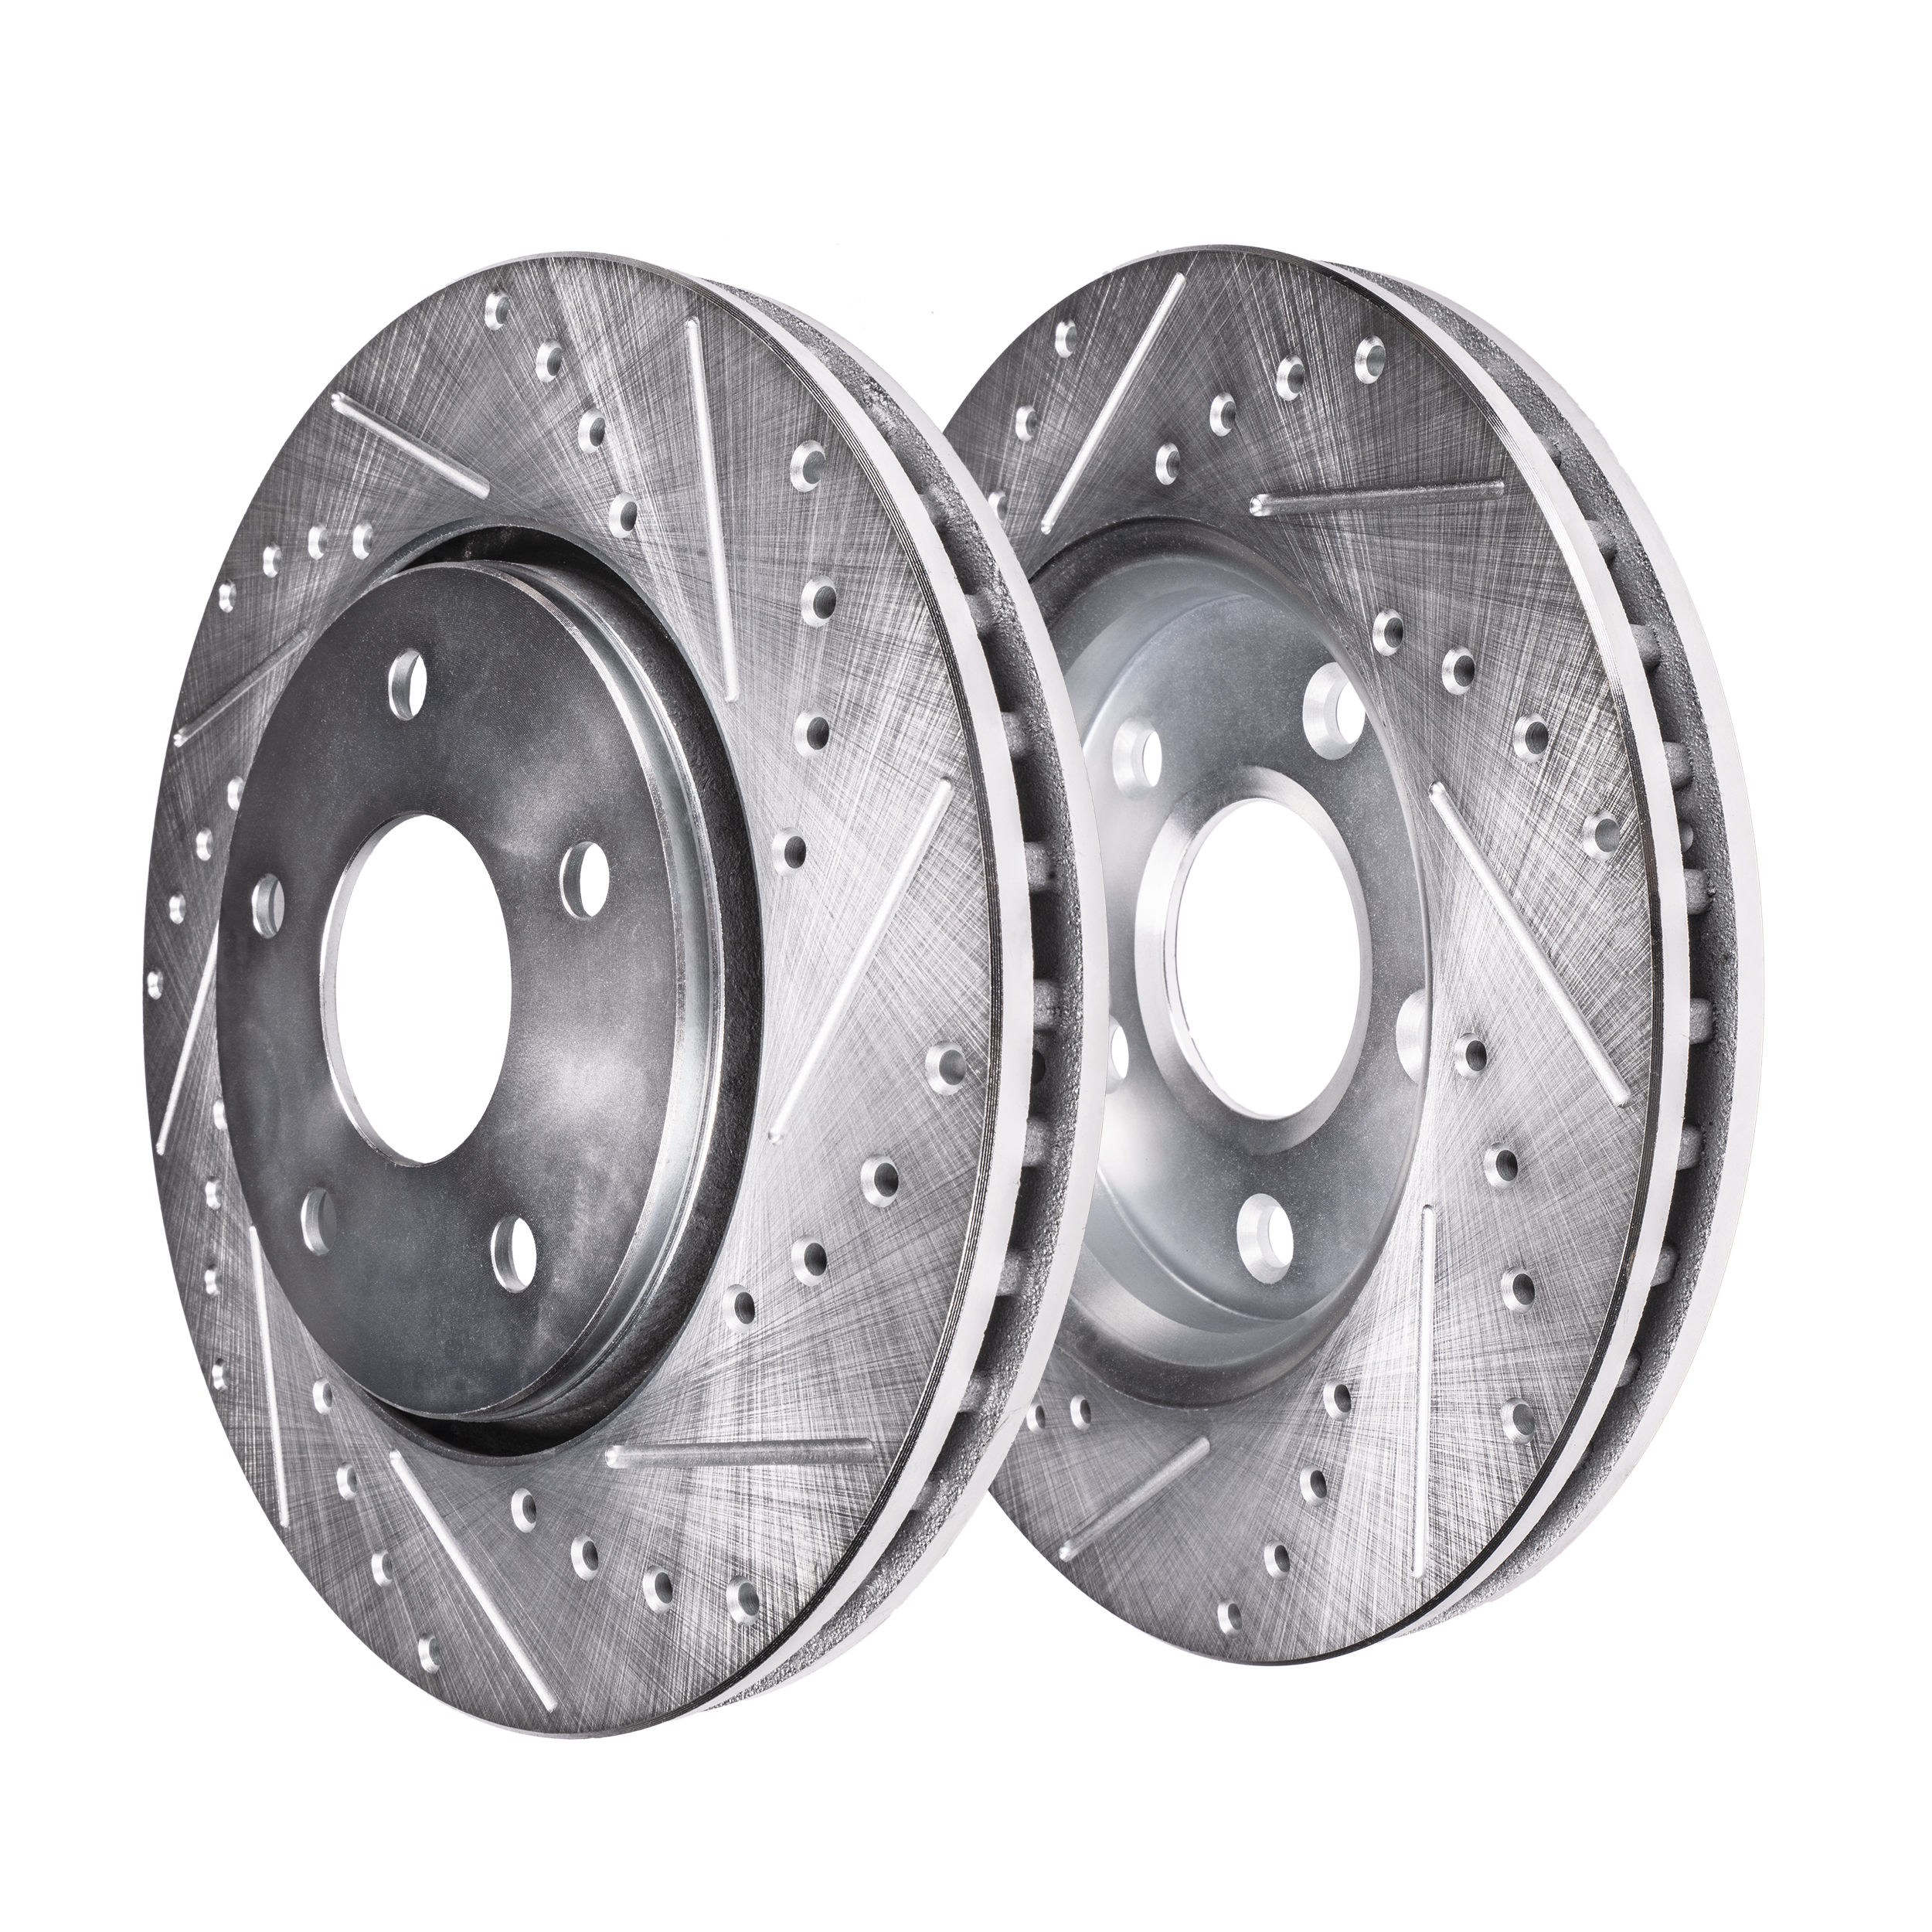 2010 2011 2012 Mercedes-Benz GL350 Disc Brake Rotors and Free Pads Rear